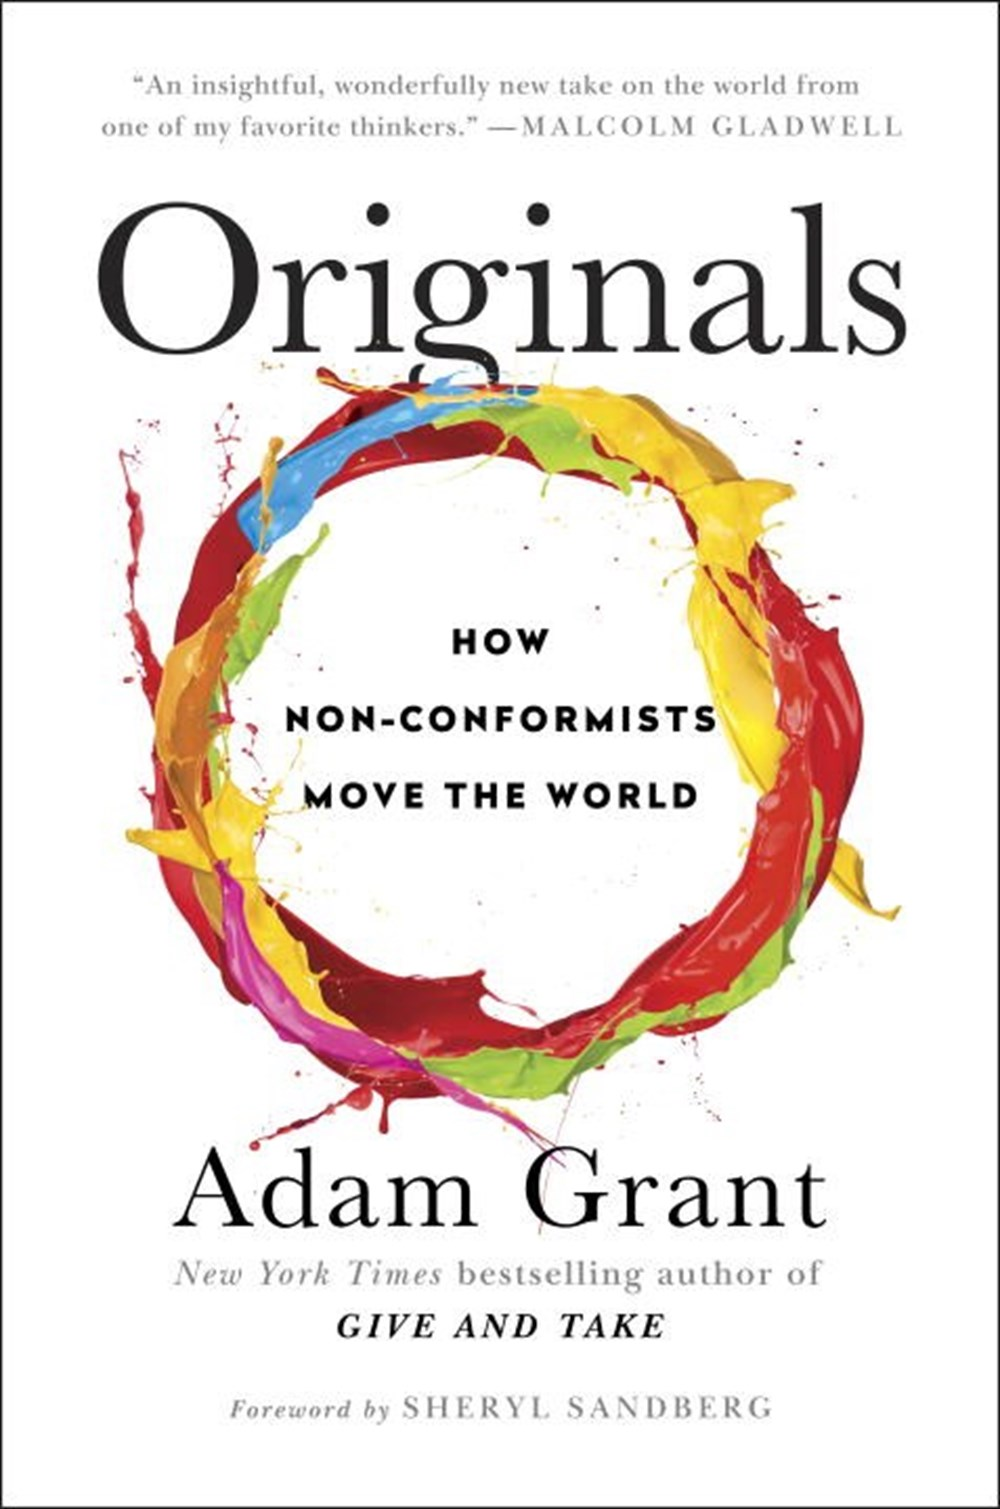 Originals How Non-Conformists Move the World